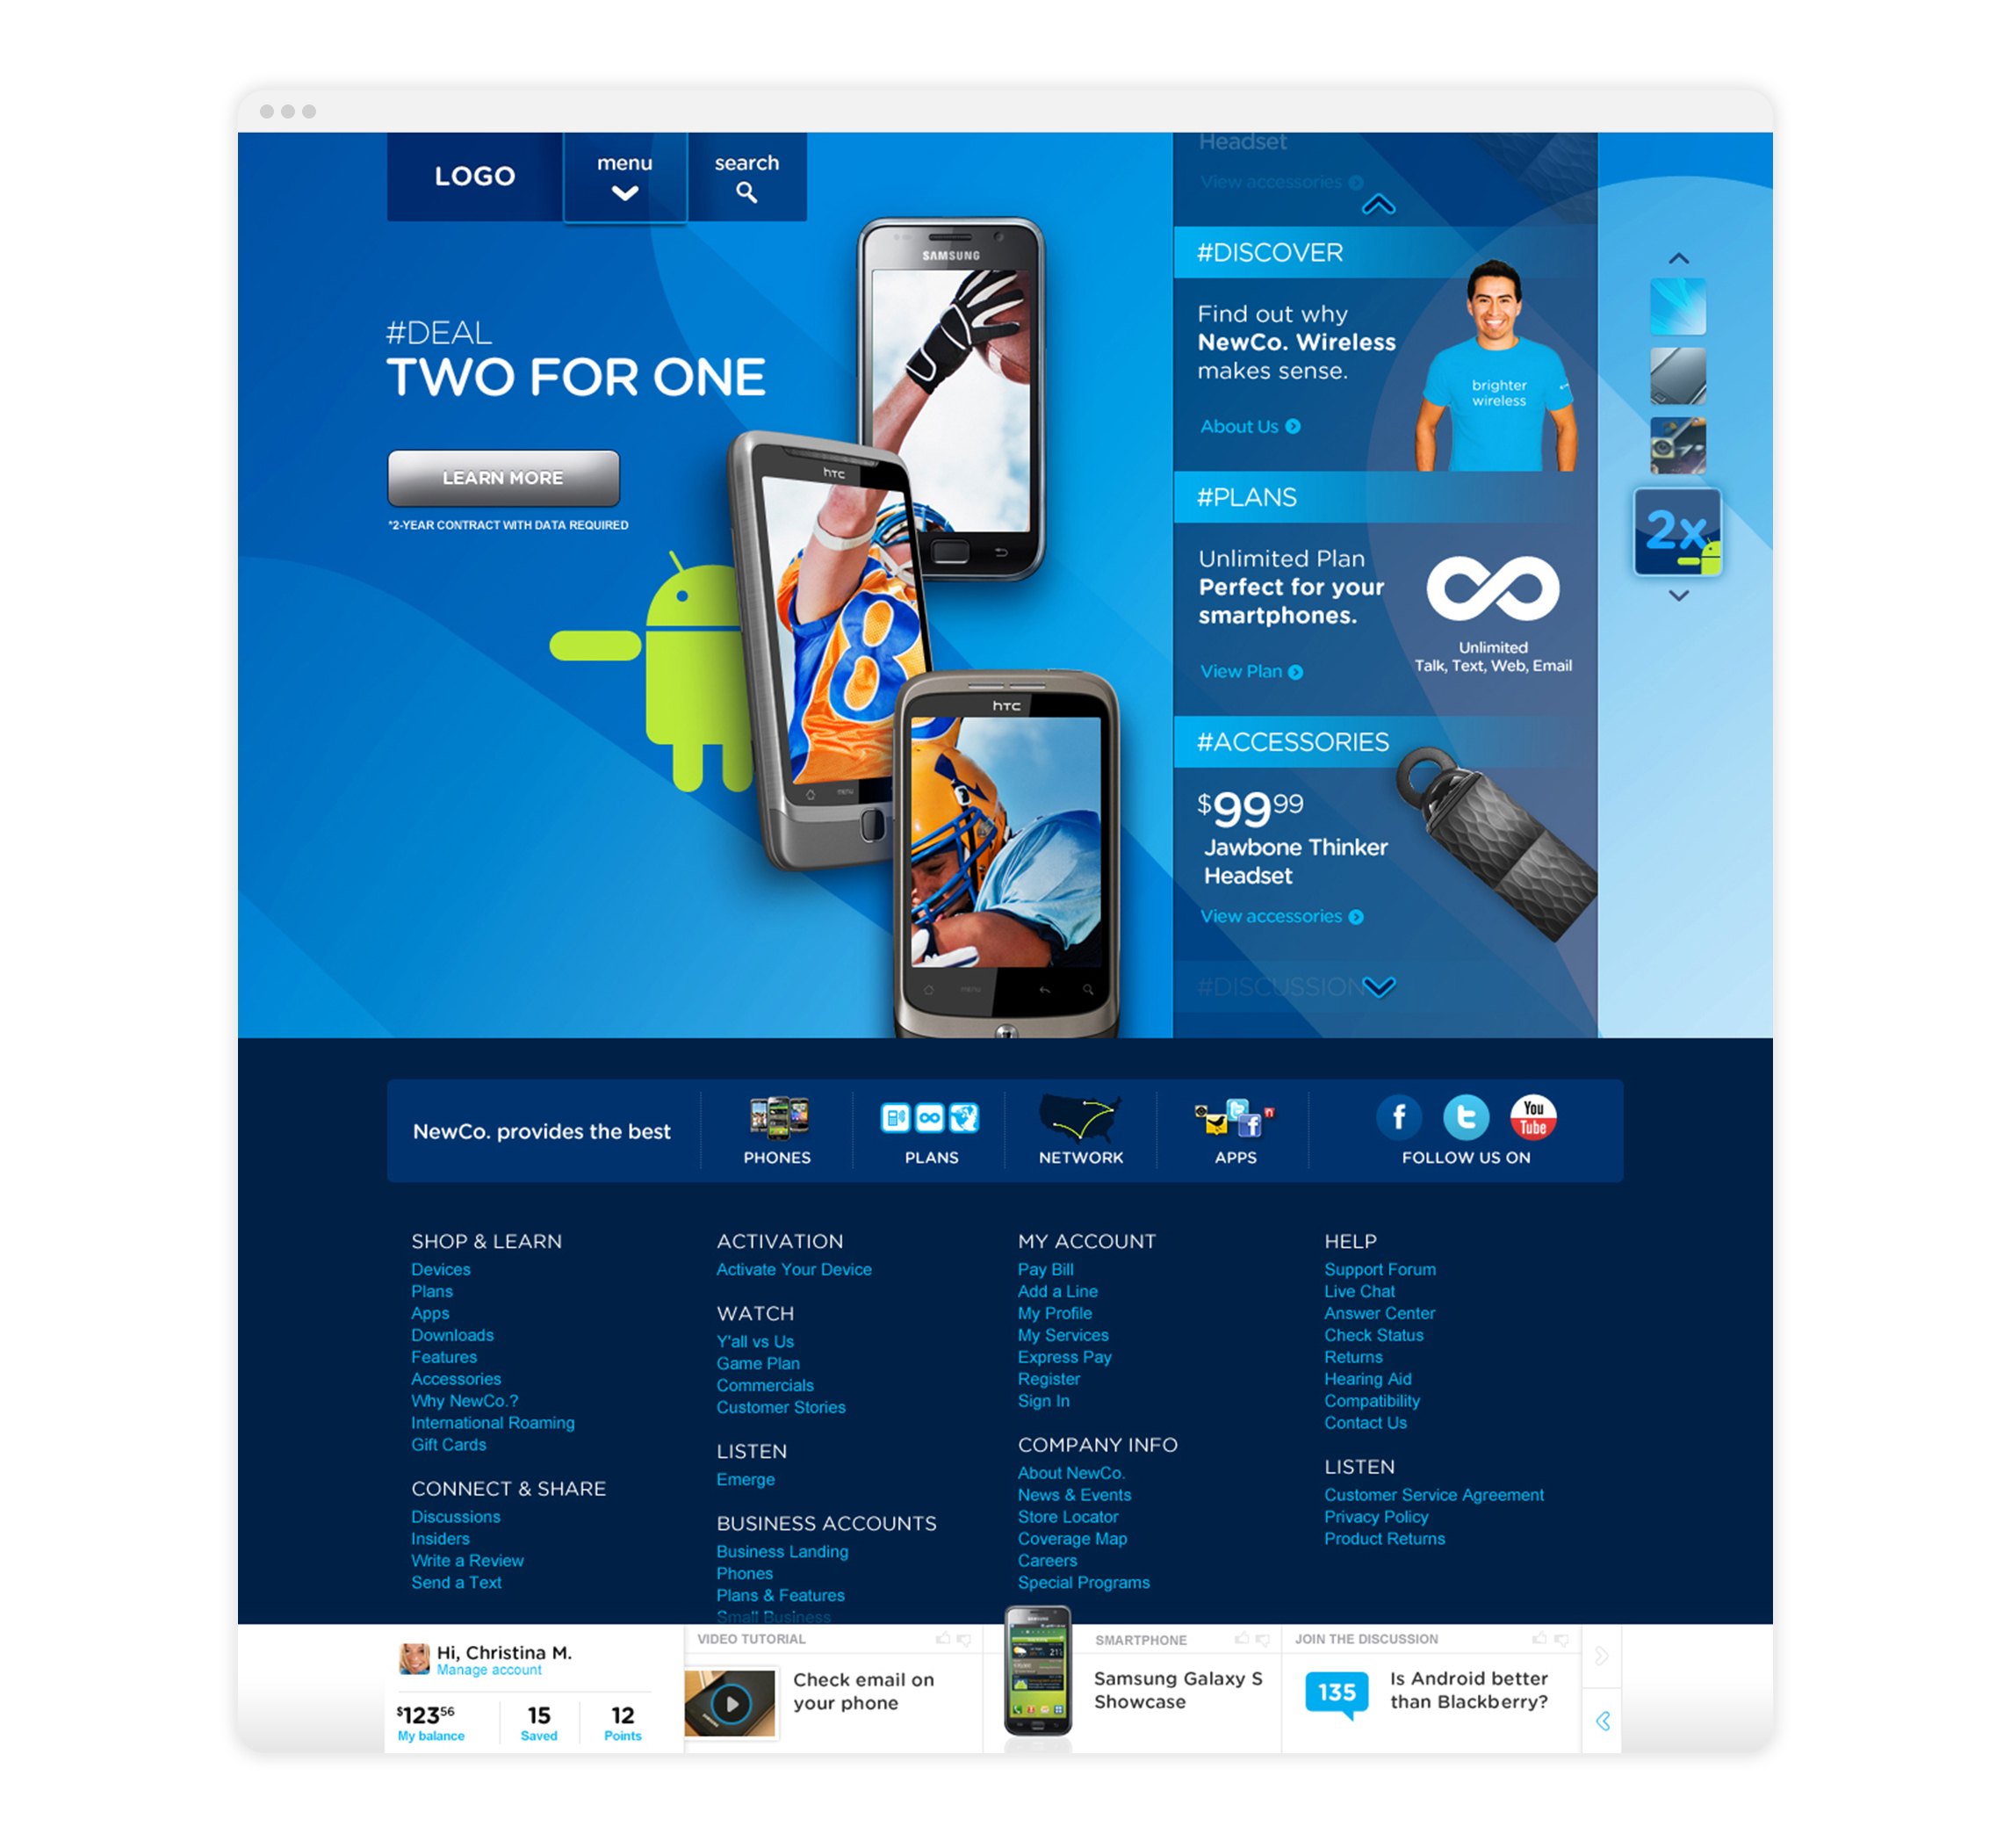 04-C-Spire-Wirless-Website-Redesign.jpg